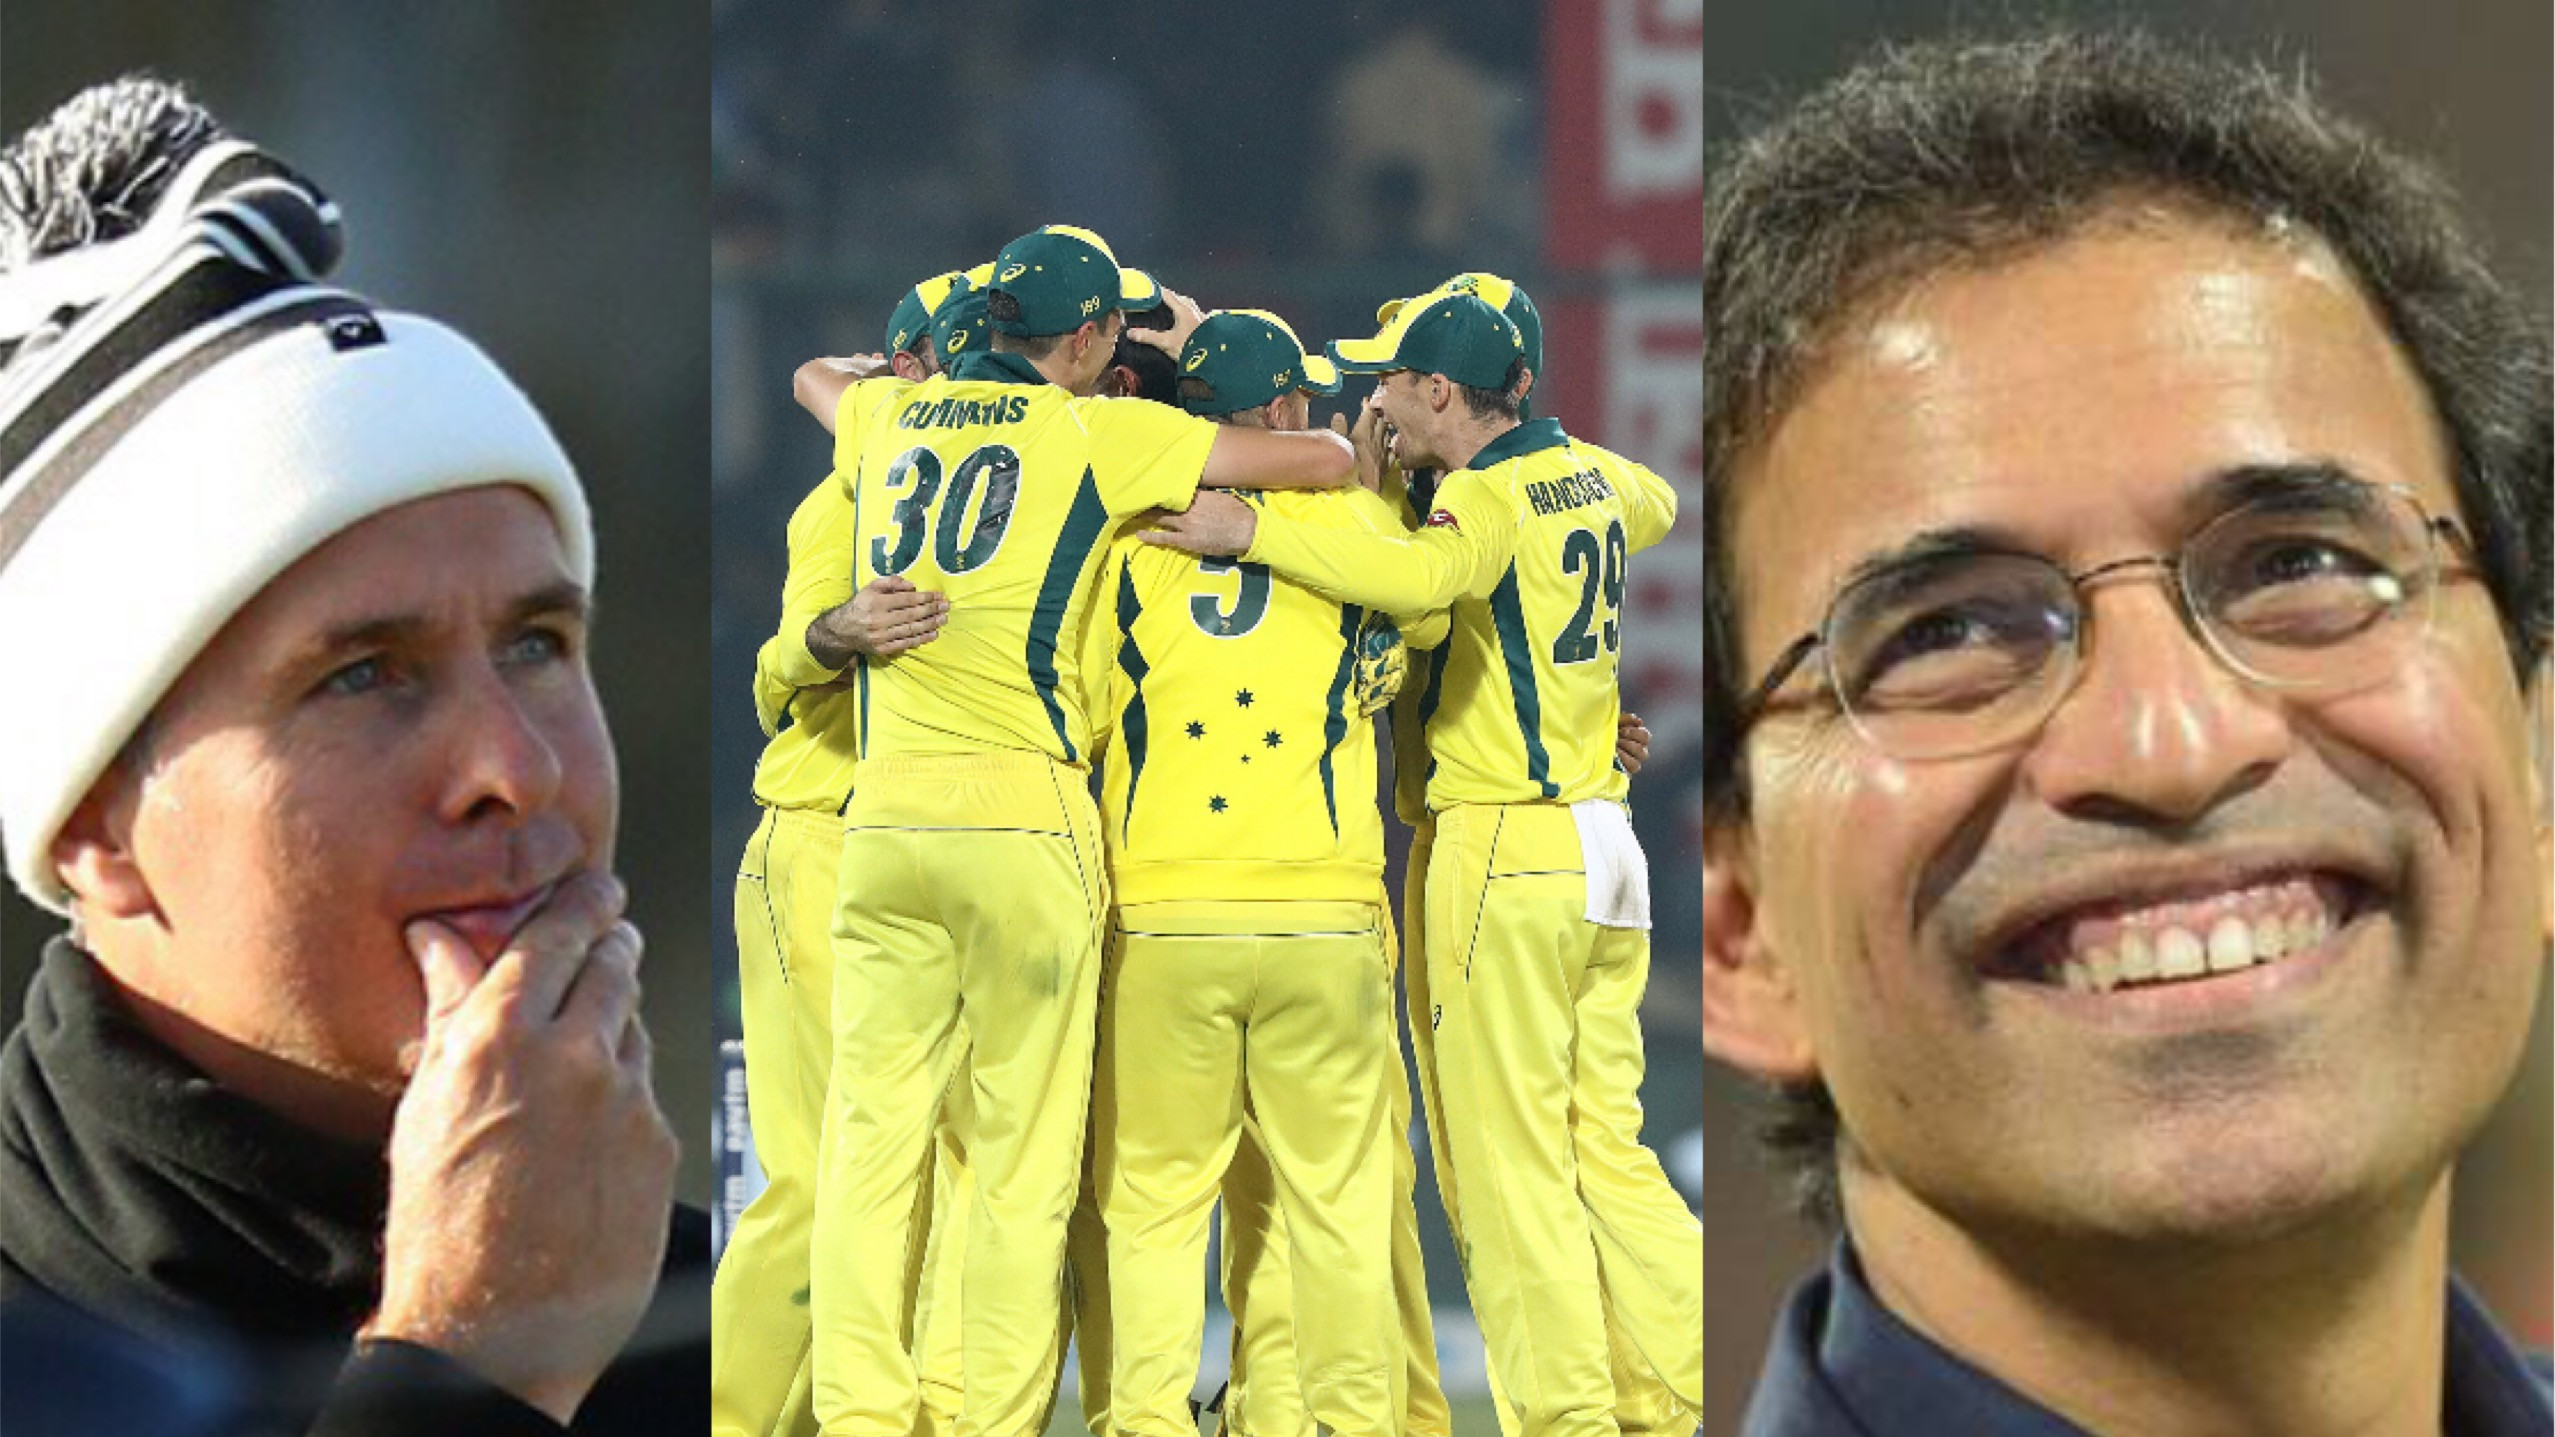 IND v AUS 2019: Twitter reacts as Australia clinches the ODI series 3-2